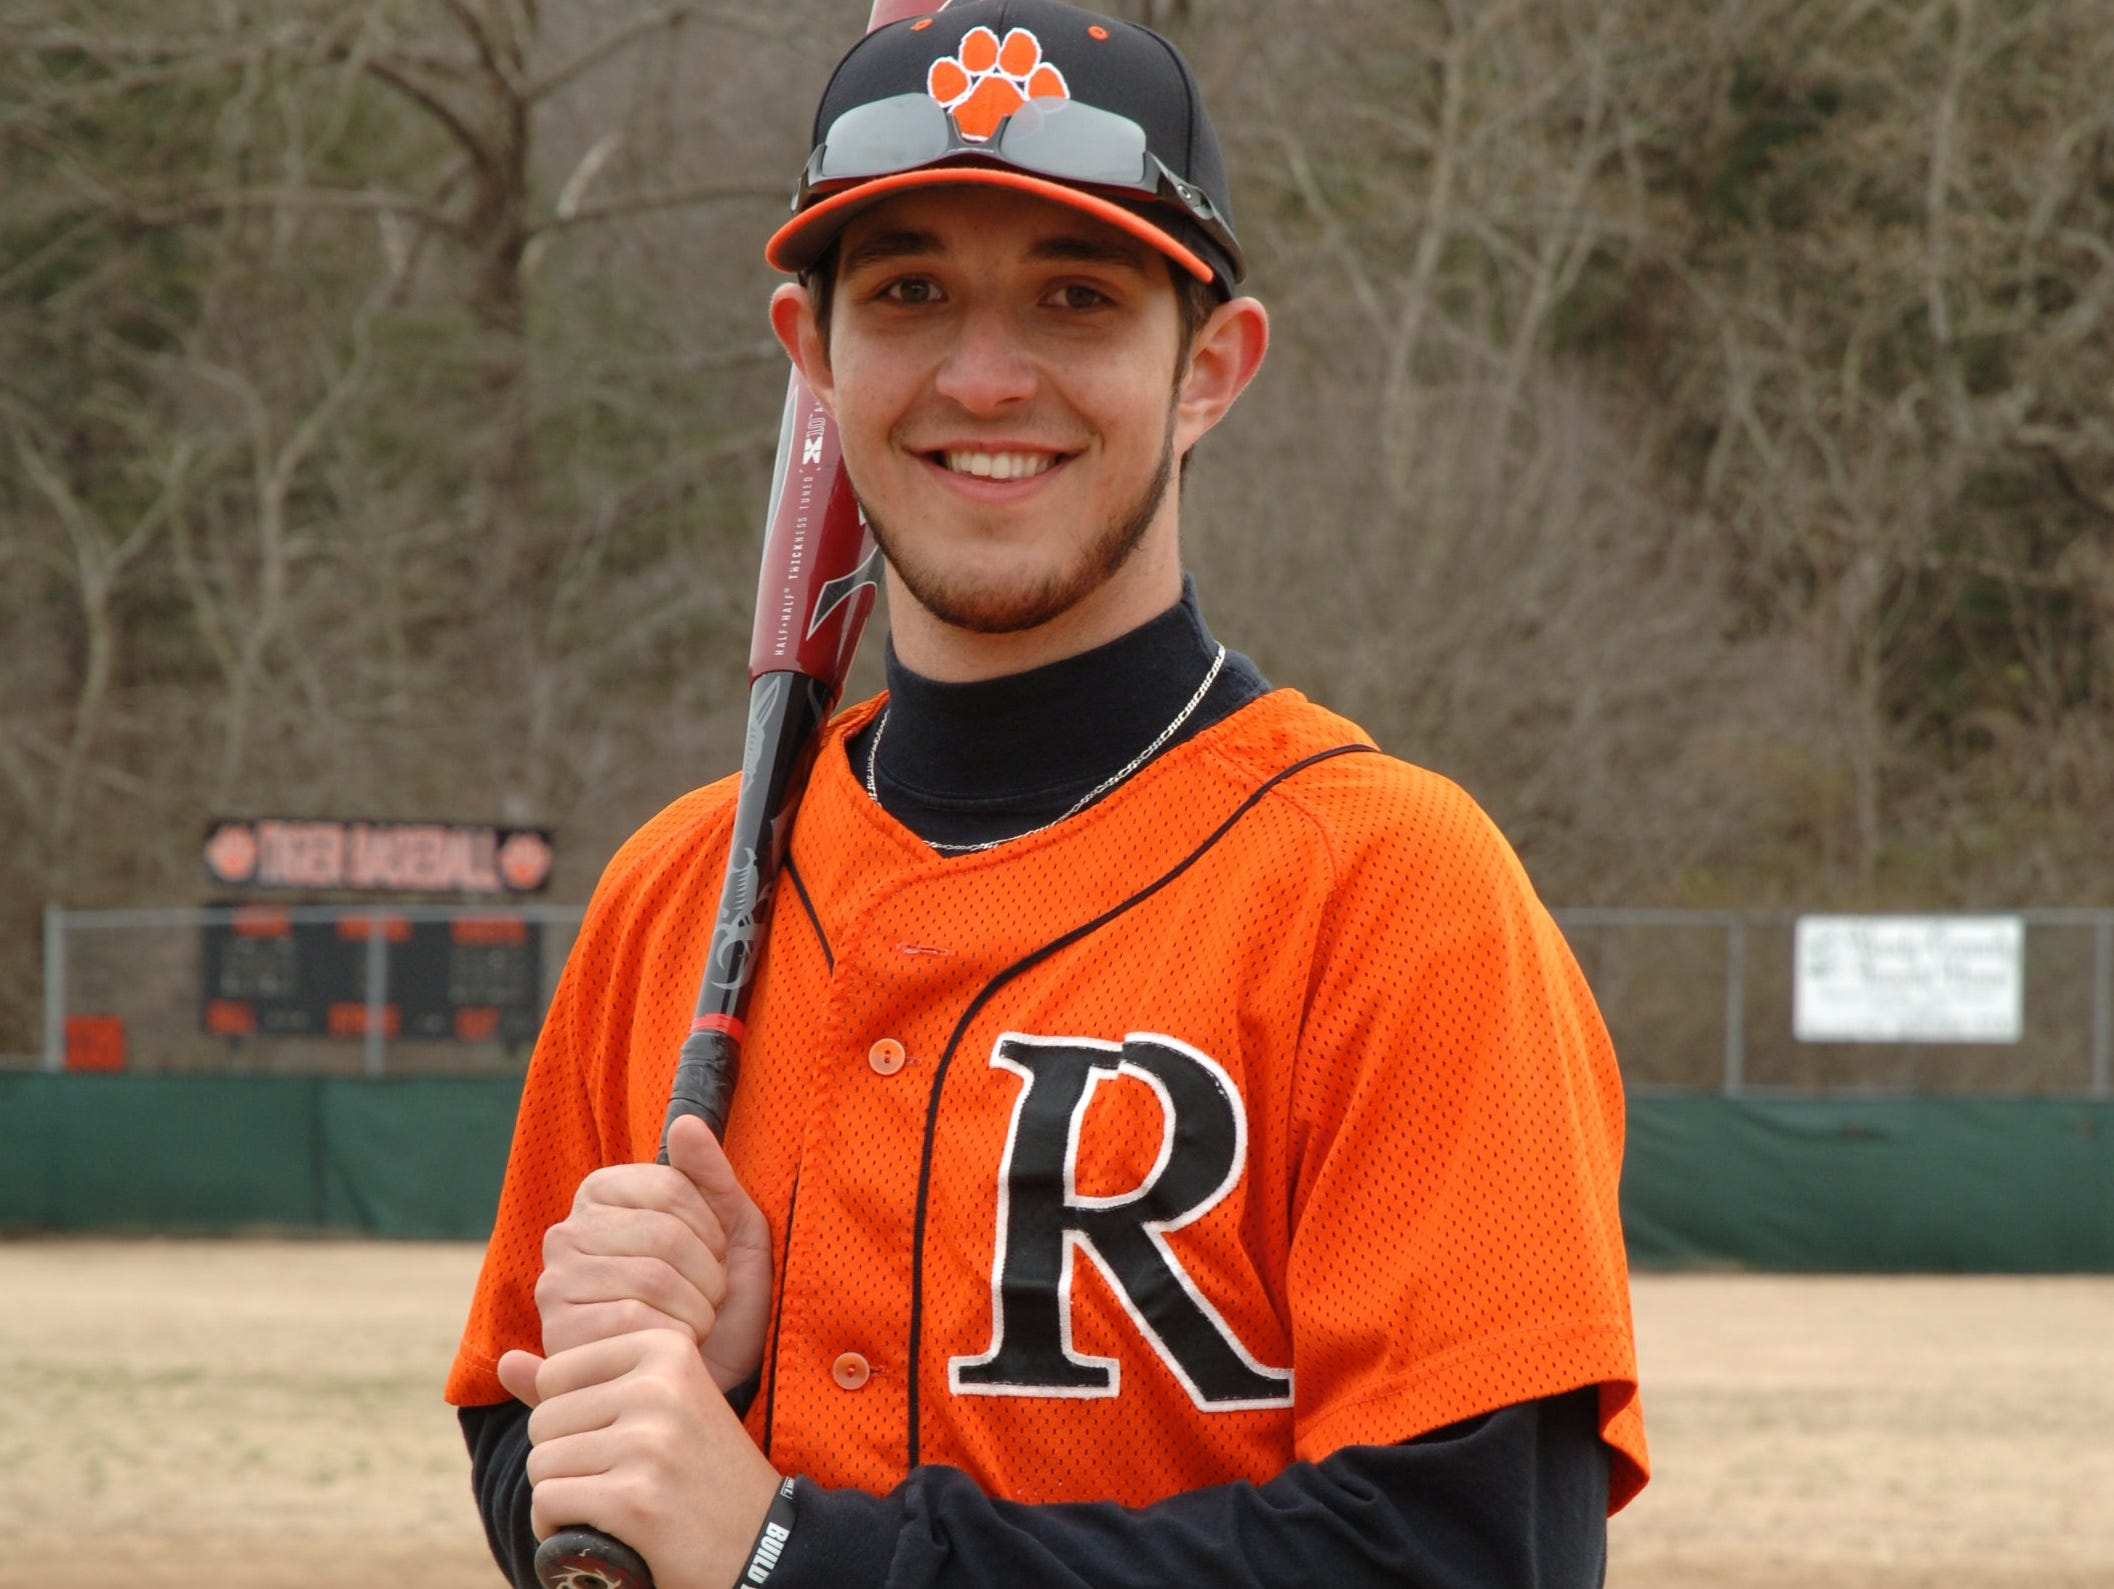 Rosman baseball player Dillon Zachary will play at the next level for Catawba Valley Community College.